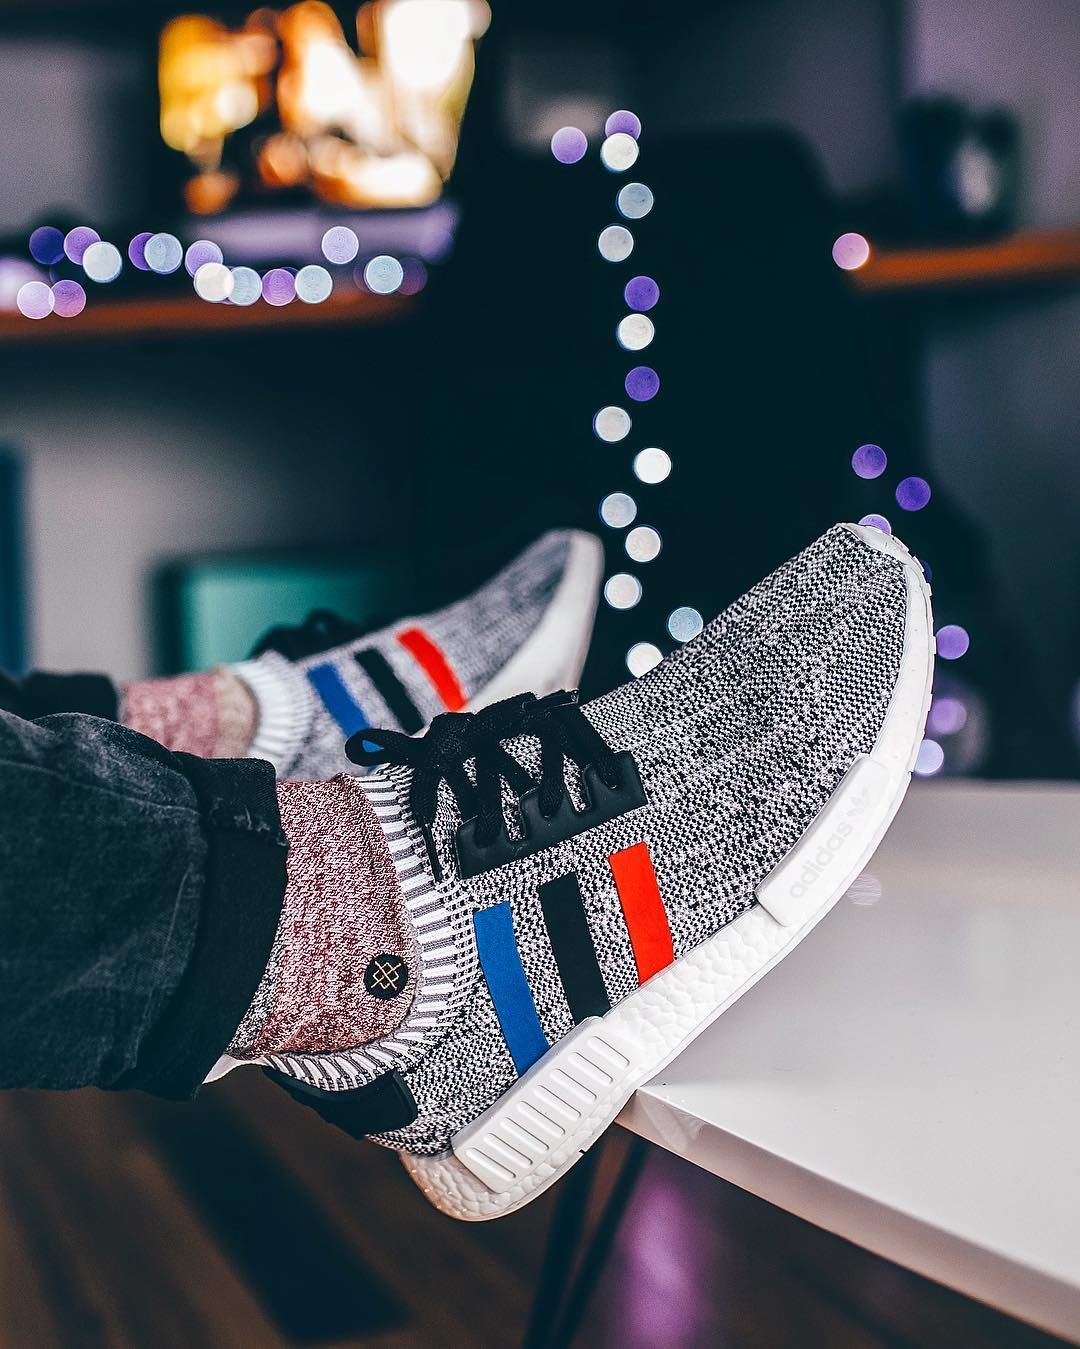 Adidas Nmd Runner Pk Tri Color Adidas Nmd Runner Adidas Shoes